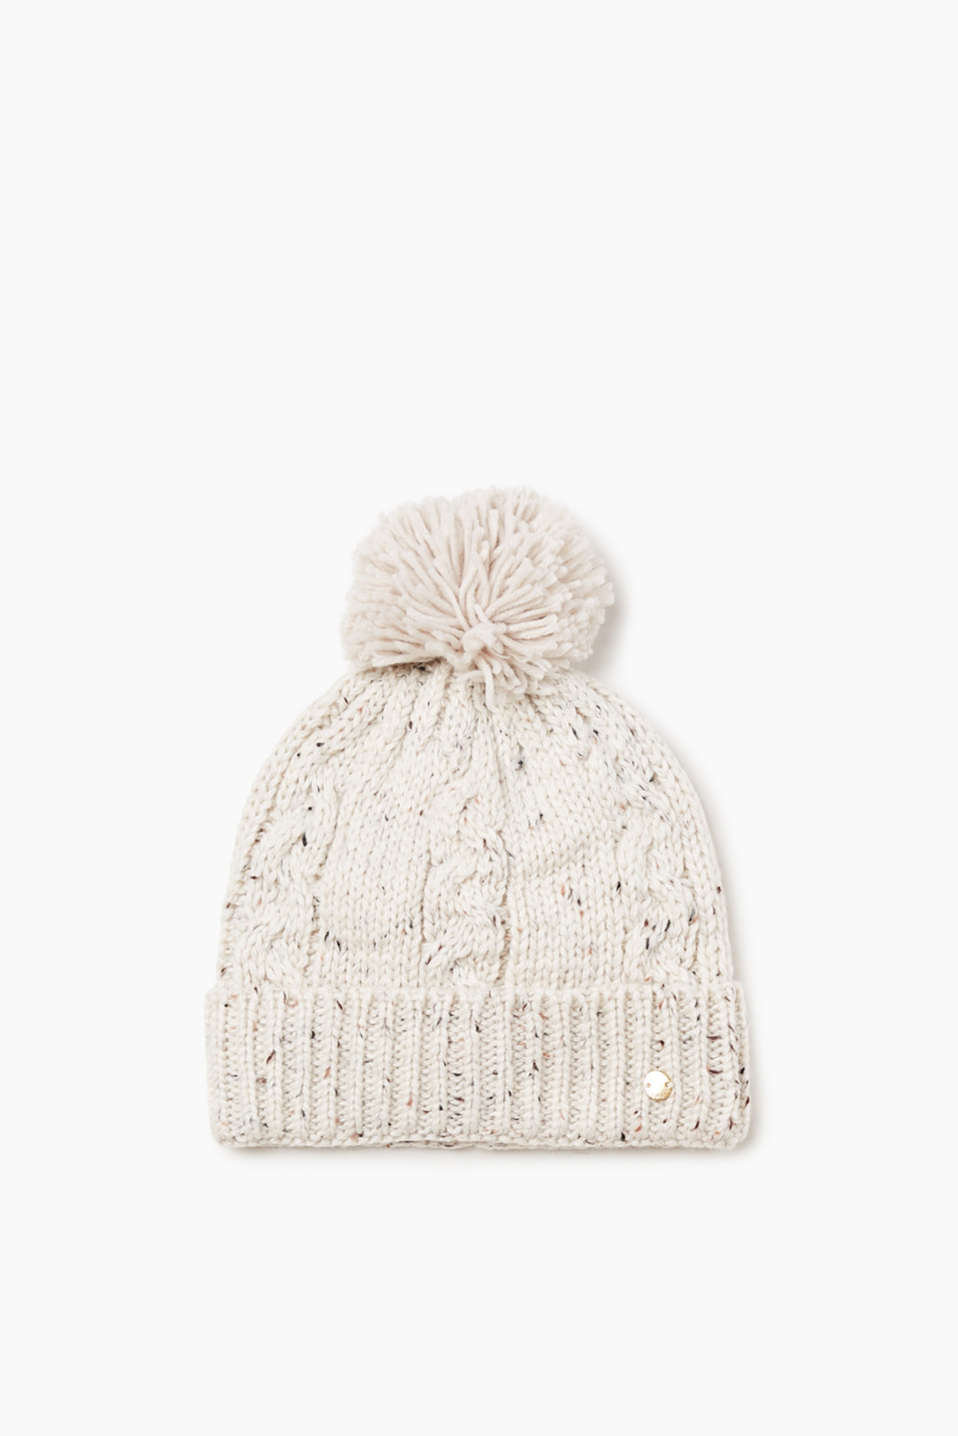 Helps you stay warm and looks really pretty: knitted hat with a cable pattern, fine melange finish and a pompom.